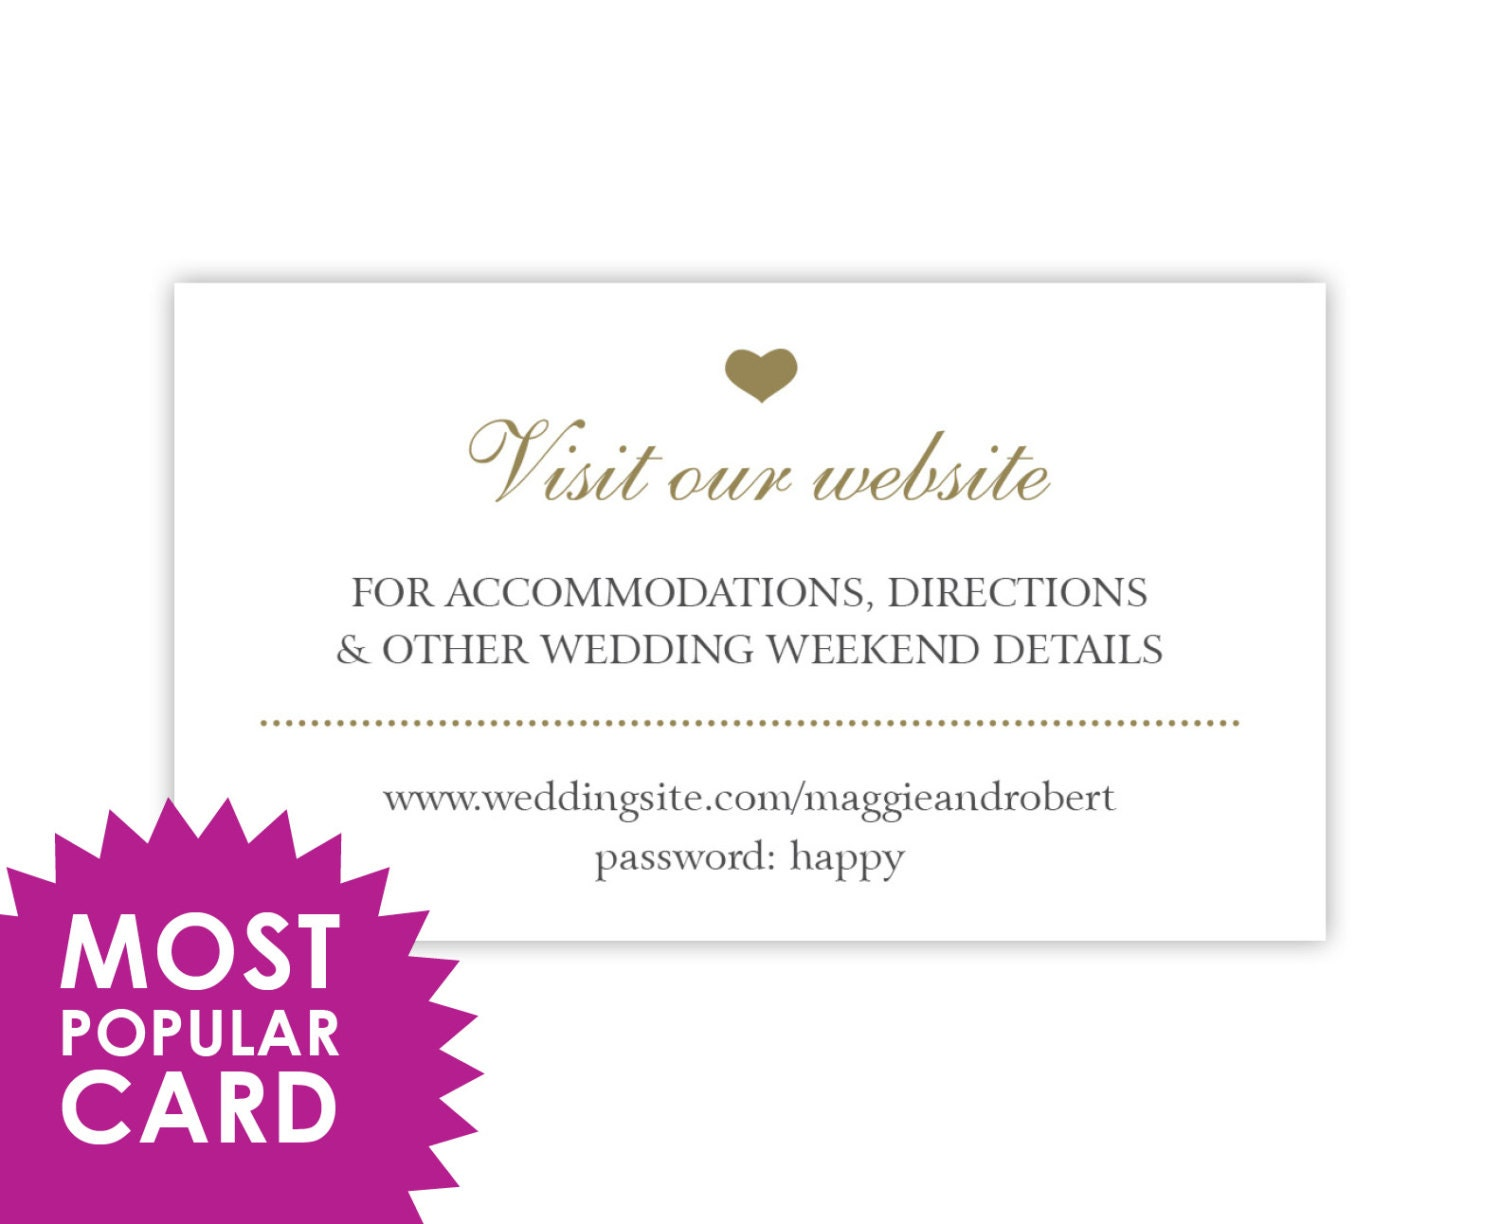 Wedding Gift Cards Online: Wedding Website Cards Enclosure Cards Wedding Hashtag Cards